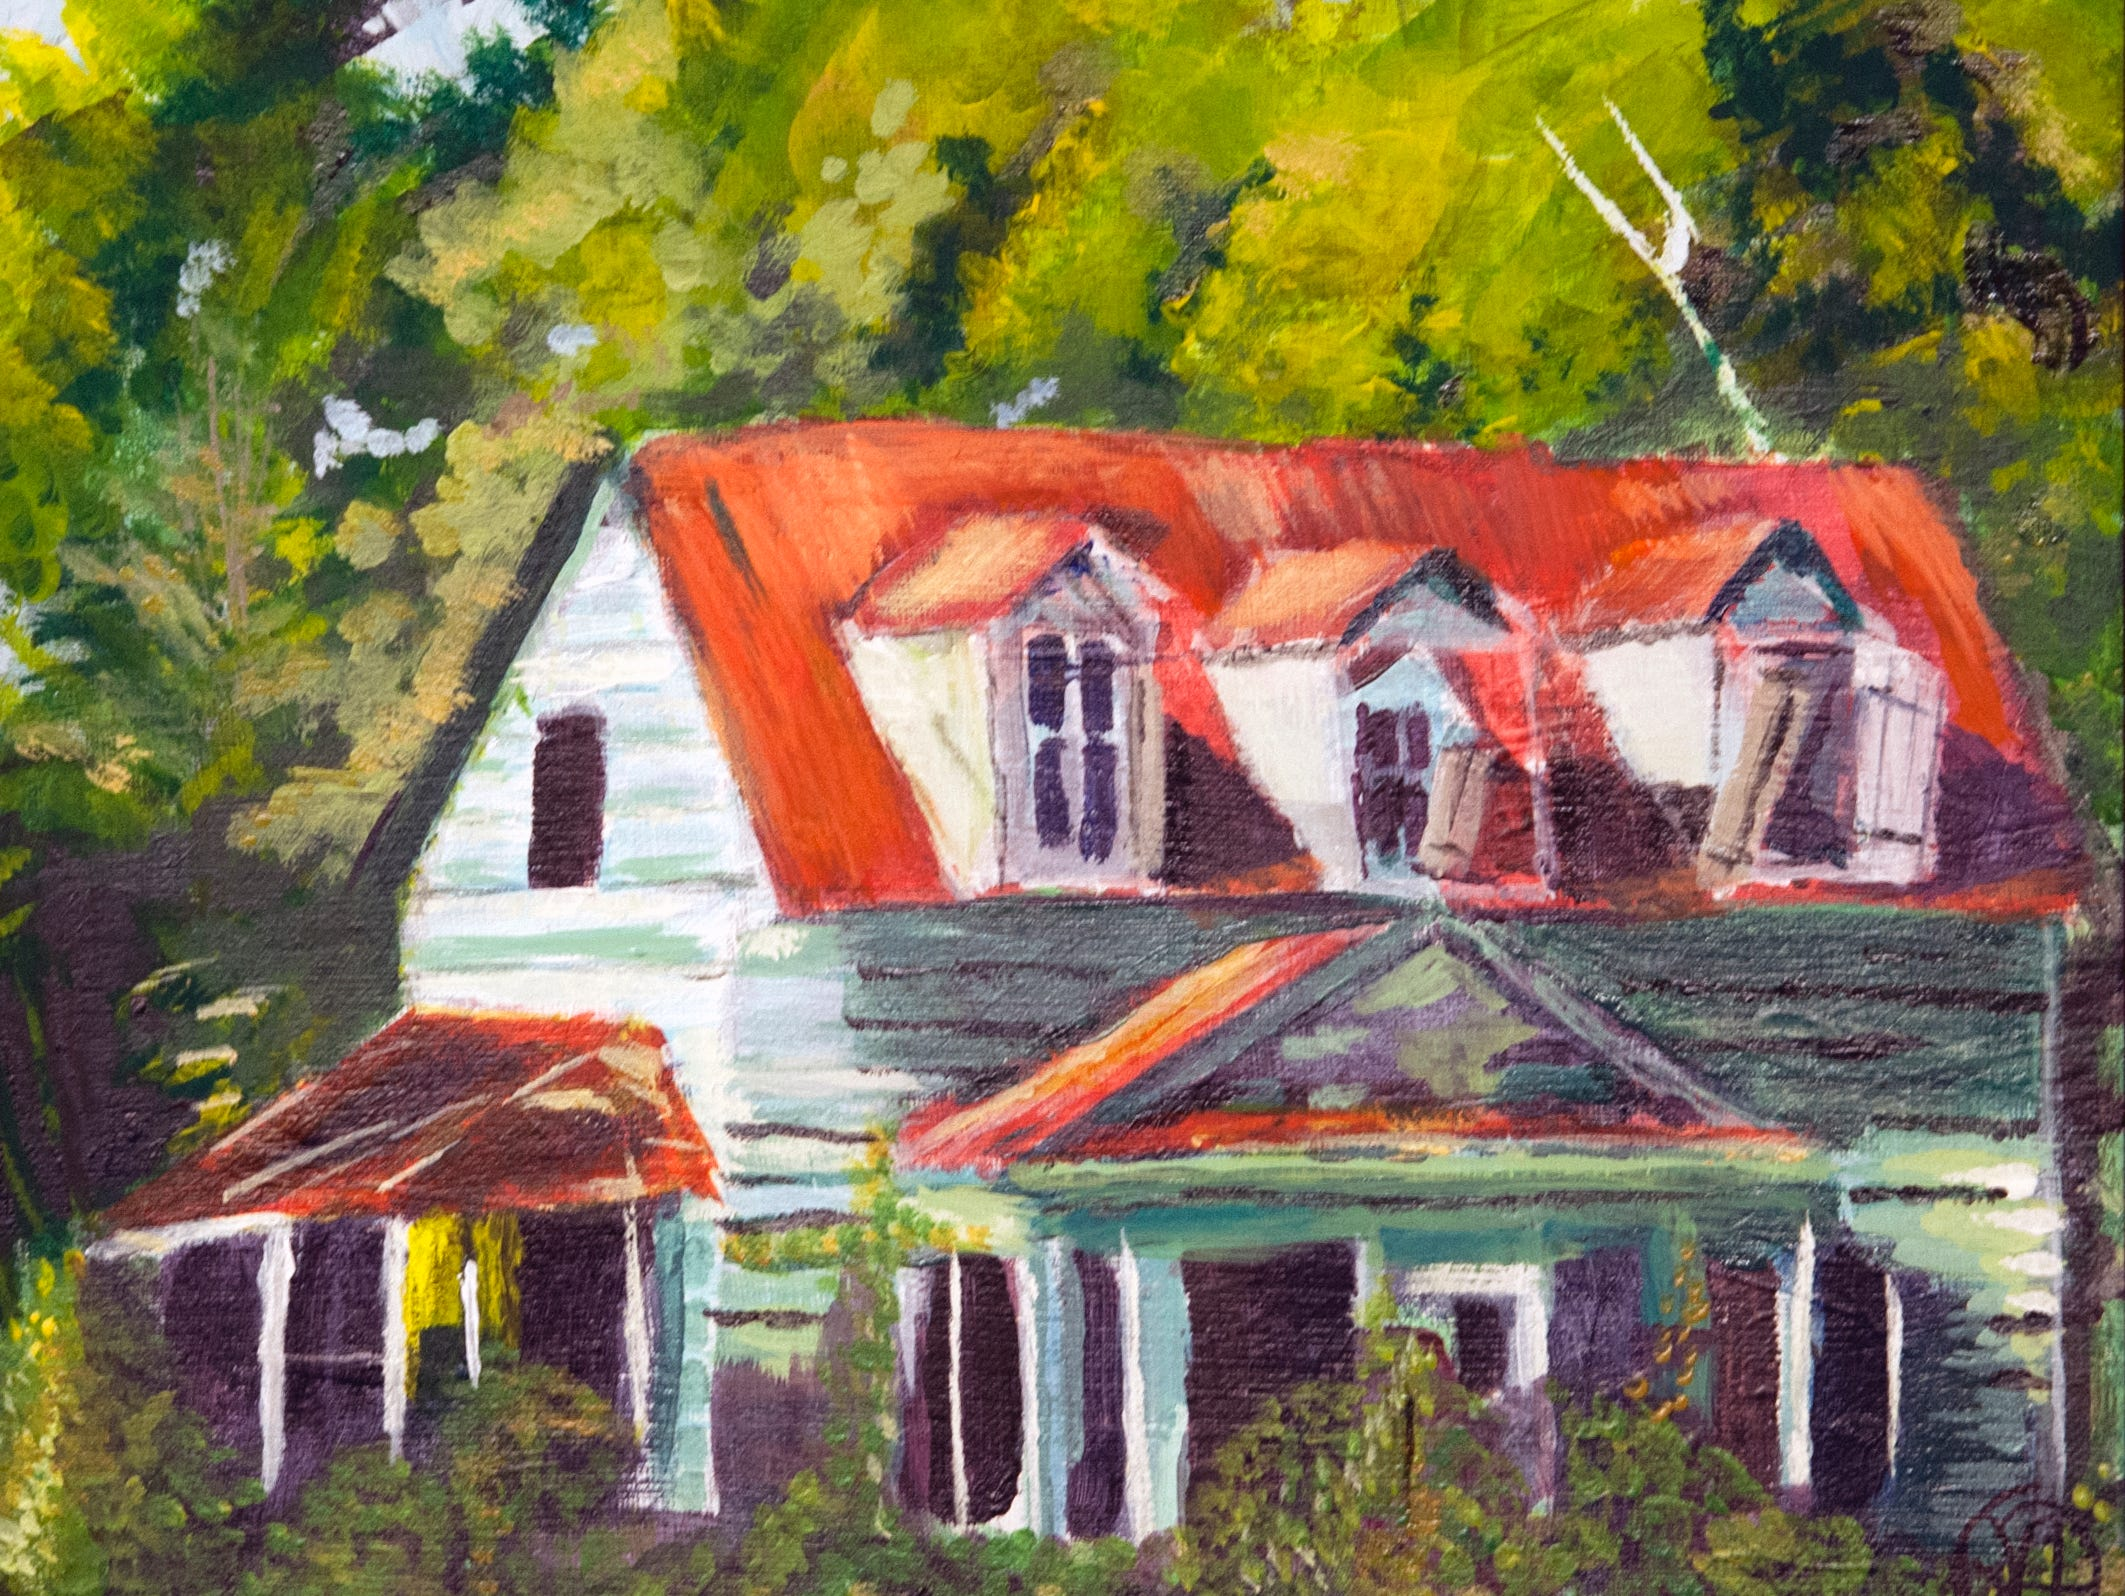 Using peripheral vision after her sight had been impaired by macular degeneration, artist and former art teacher Rhonda Duplessis painted this abandoned country house. The painting, named Rural Mississippi, is part of the VAS Mississippi-sponsored Community Art Group exhibit hanging at the Arts Center of Mississippi through Jan. 10, 2019.